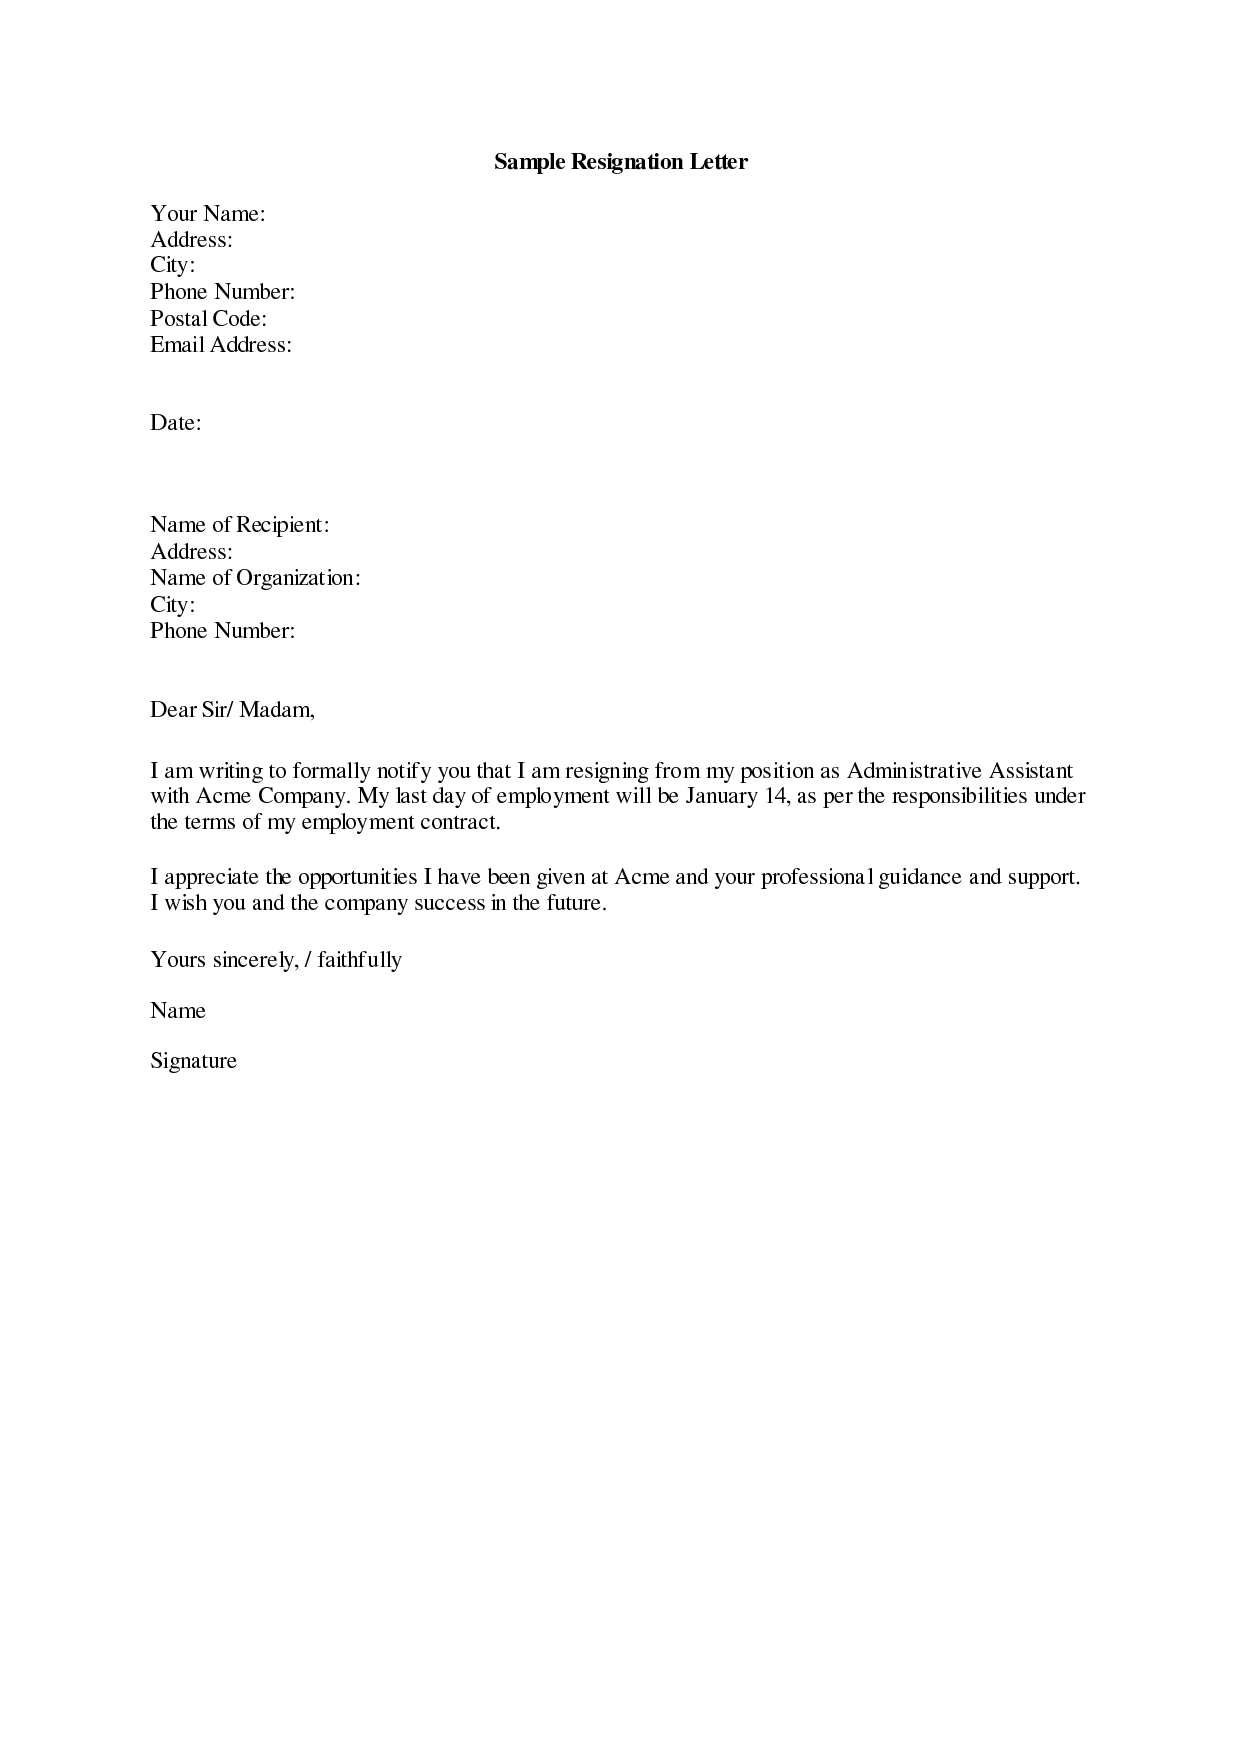 resignation letter template   google search   employment    resignation letter template   google search   employment   pinterest   resignation letter and letter of resignation